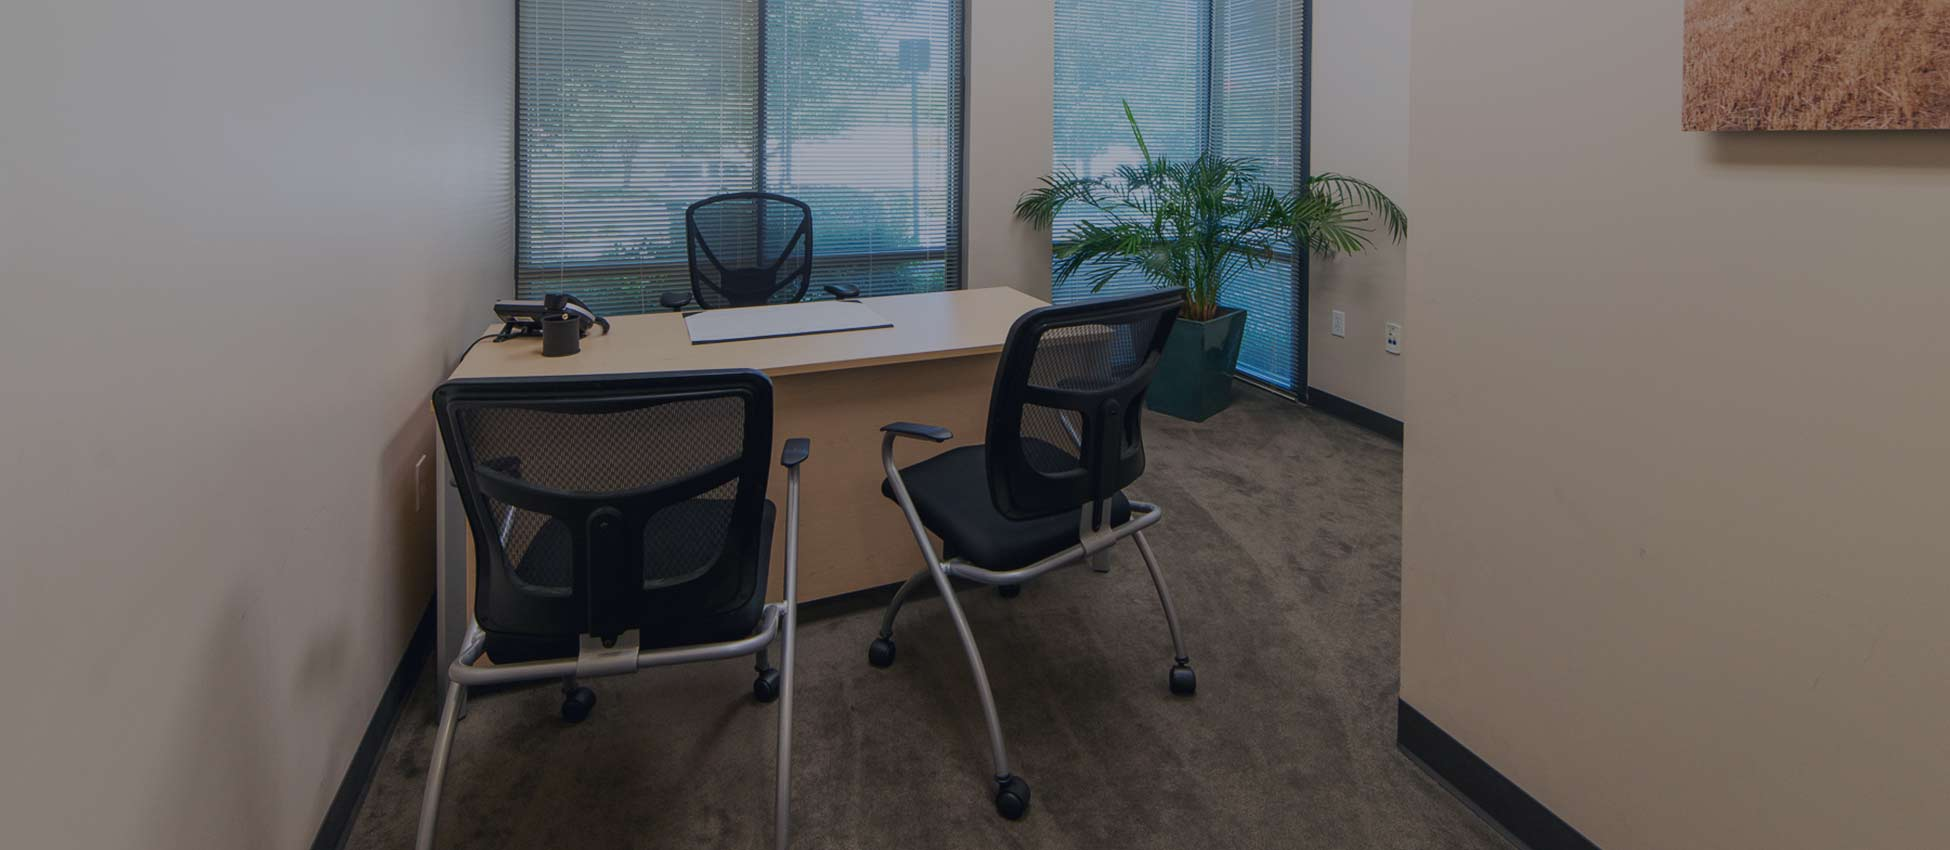 pacific-workplaces-sacramento-greenhaven-private-office